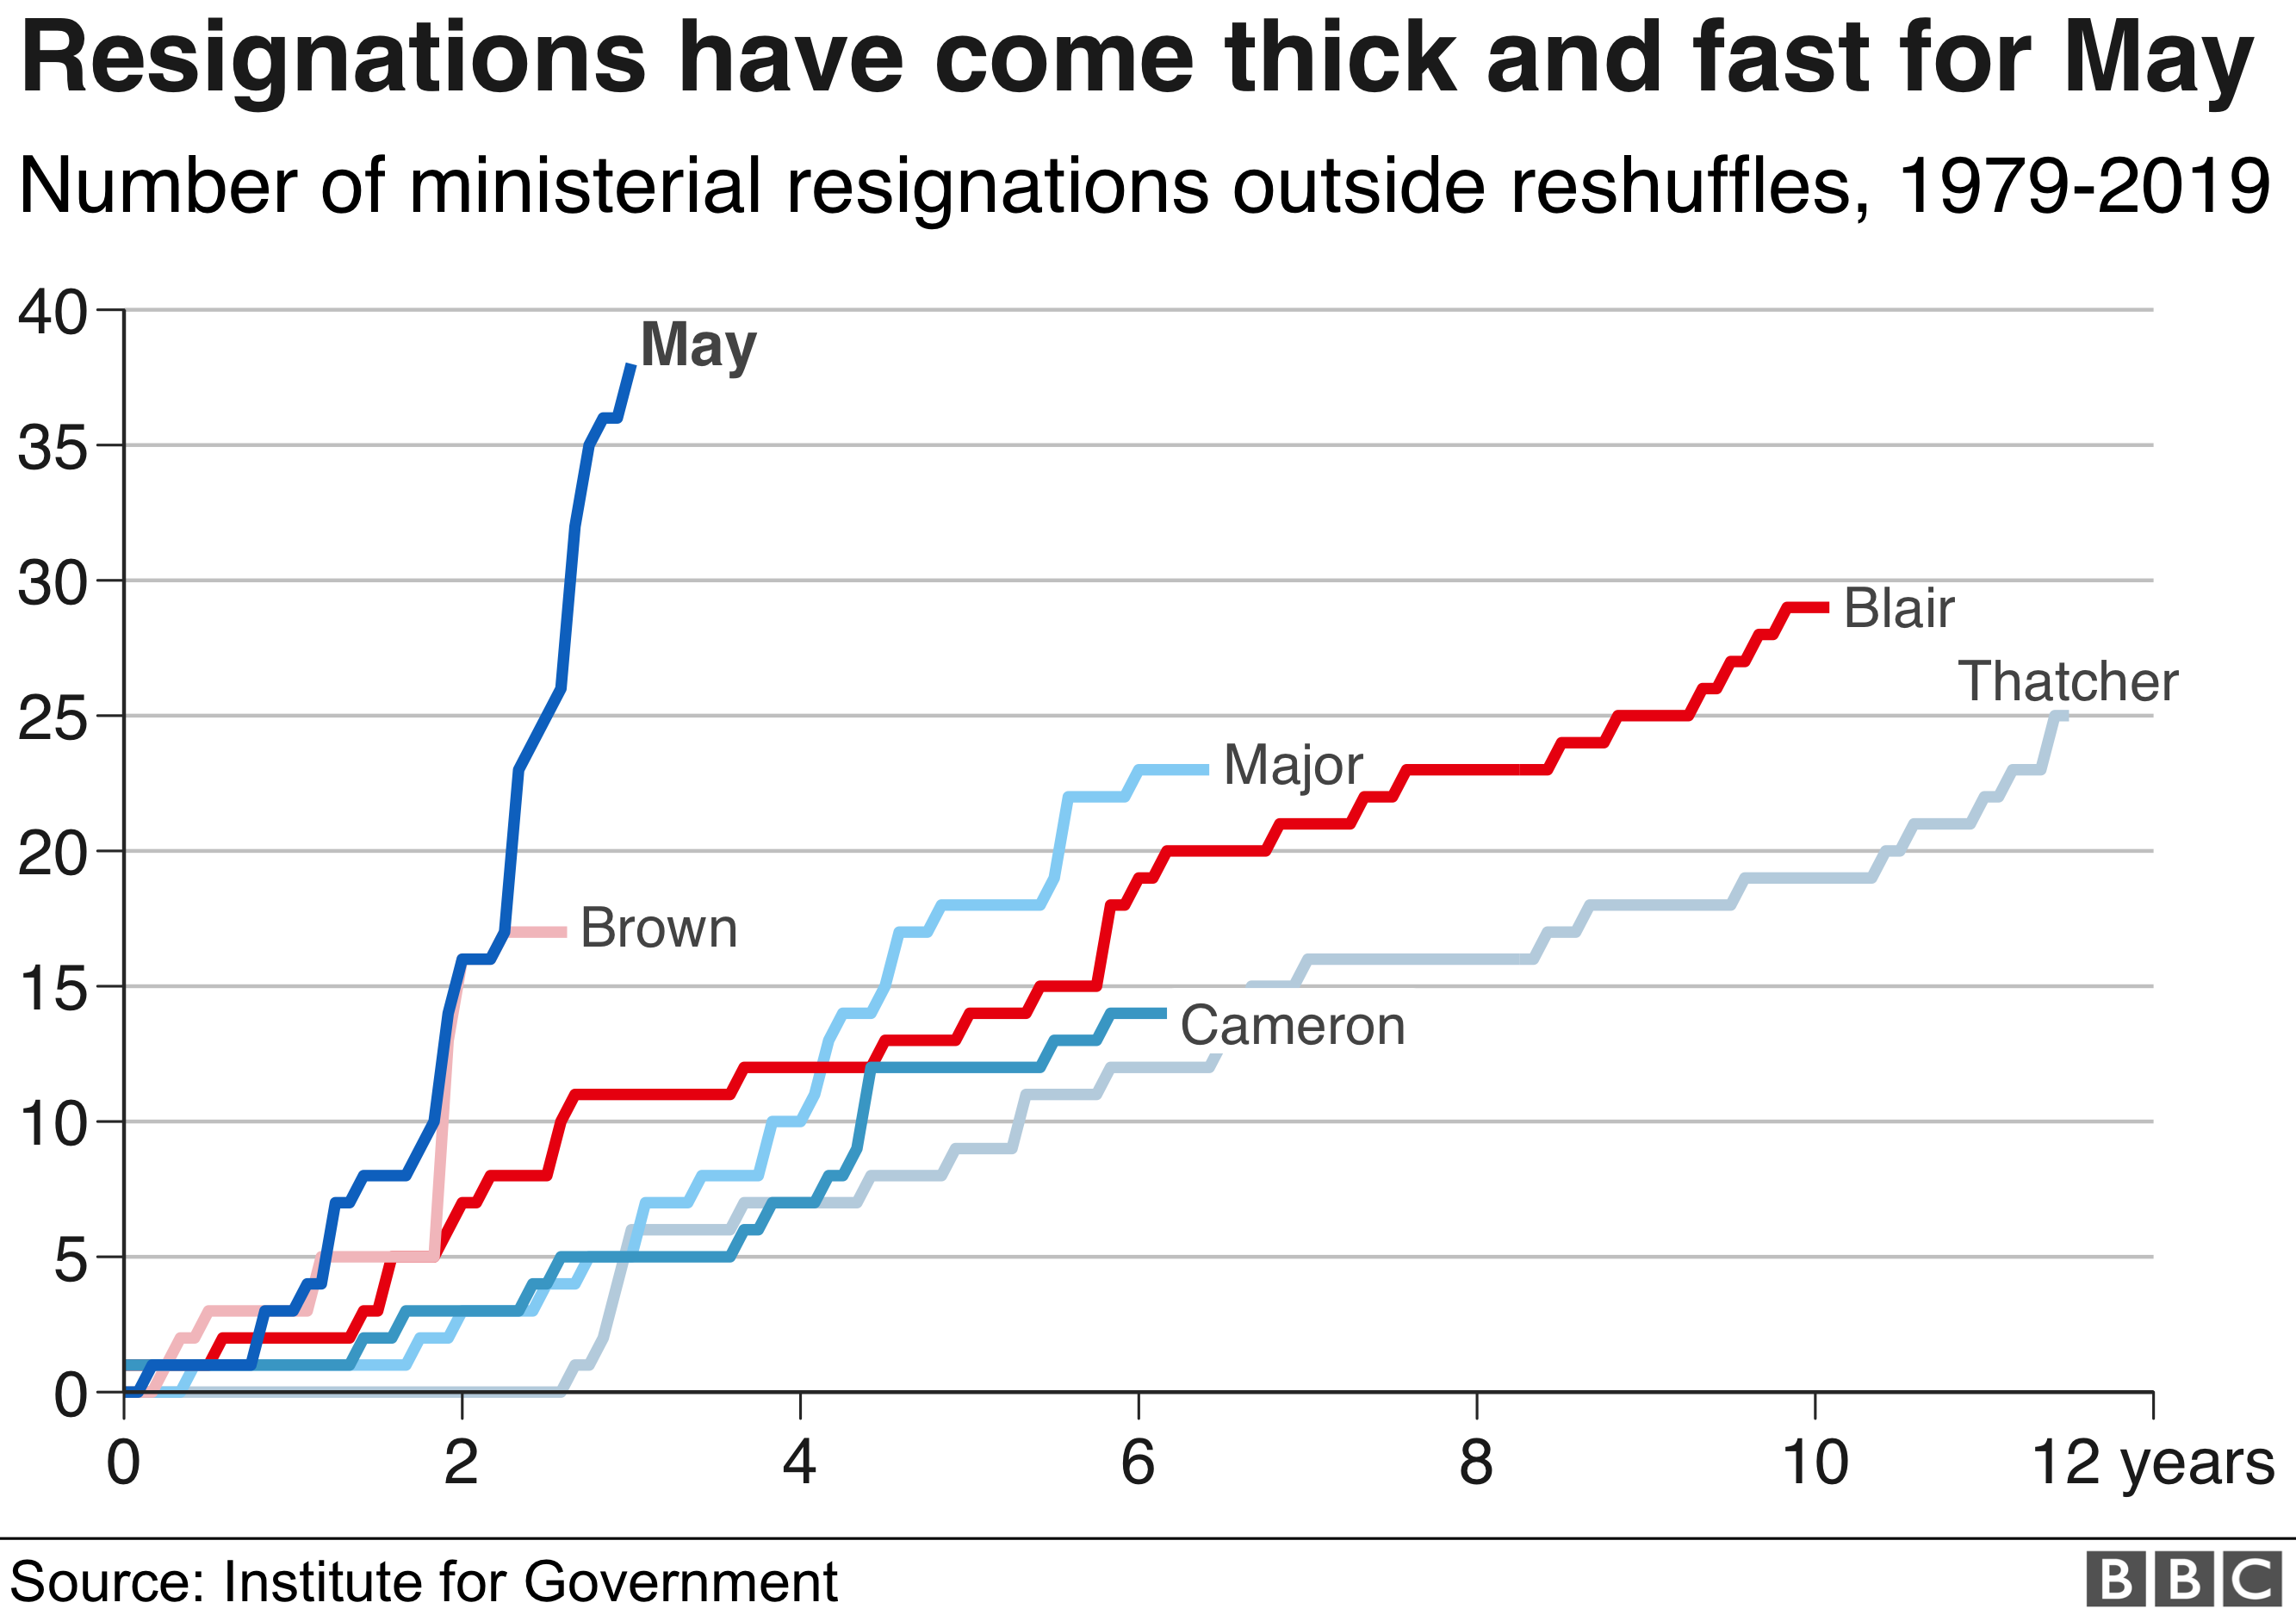 Chart comparing ministerial resignations for Theresa May and predecessors